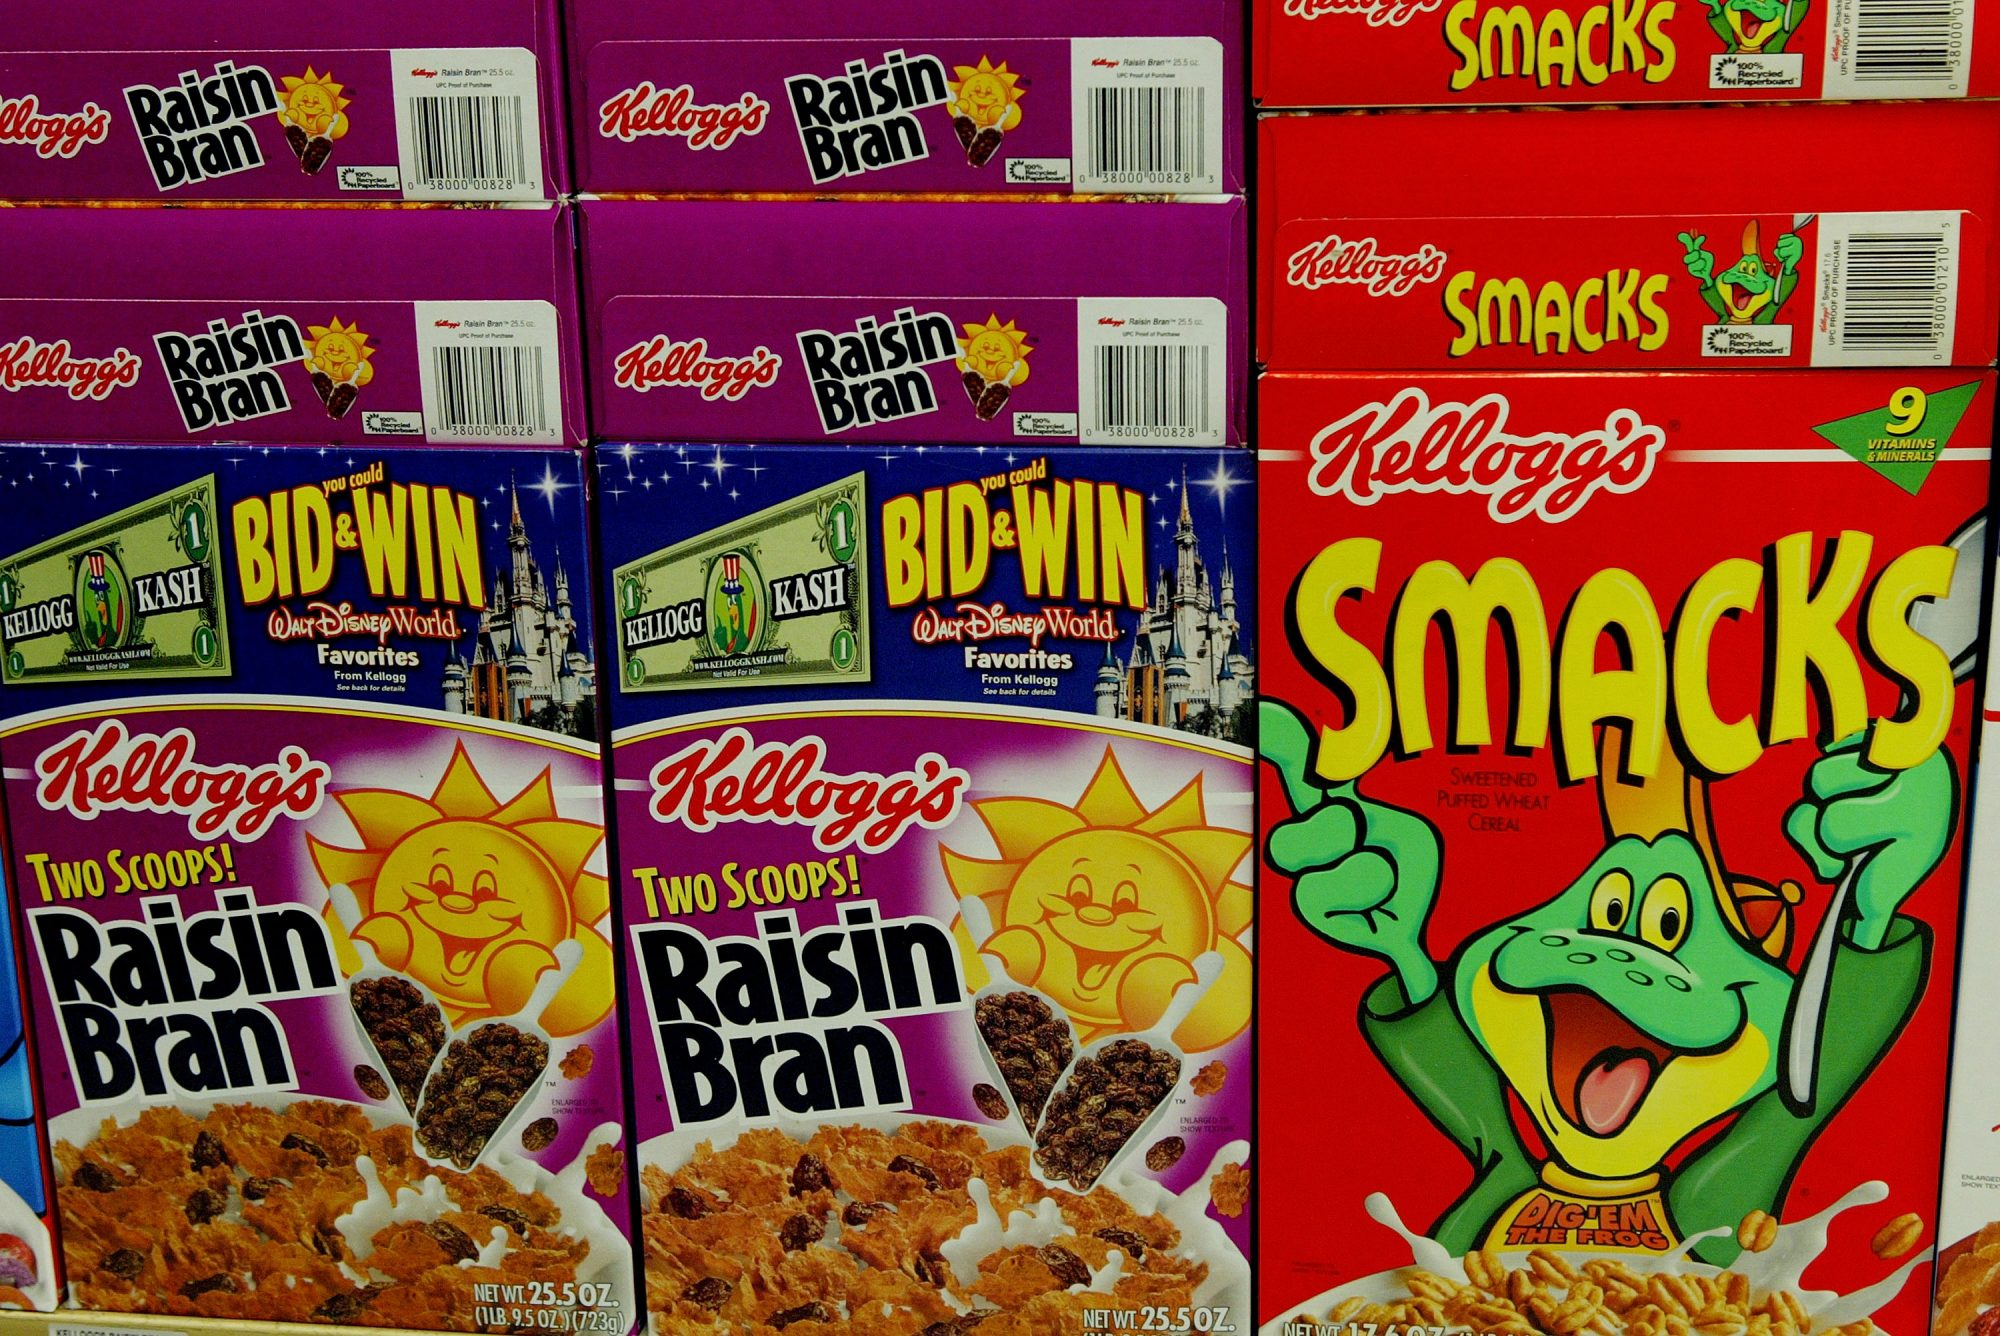 Kellogg's Recalls Honey Smacks